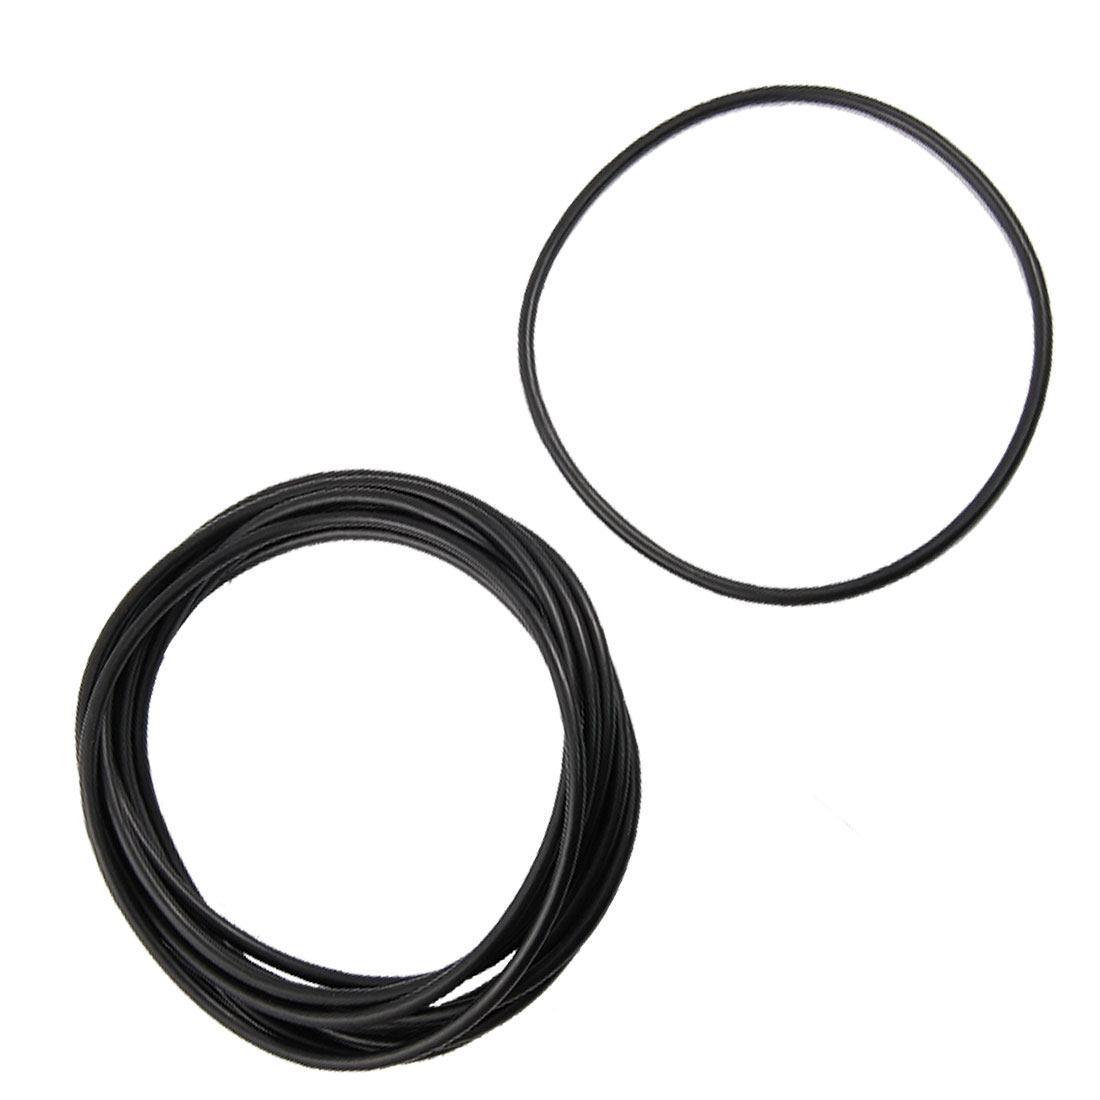 10 Pcs Mechanical Black NBR O Rings Oil Seal Washers 150mm x 5mm x 140mm